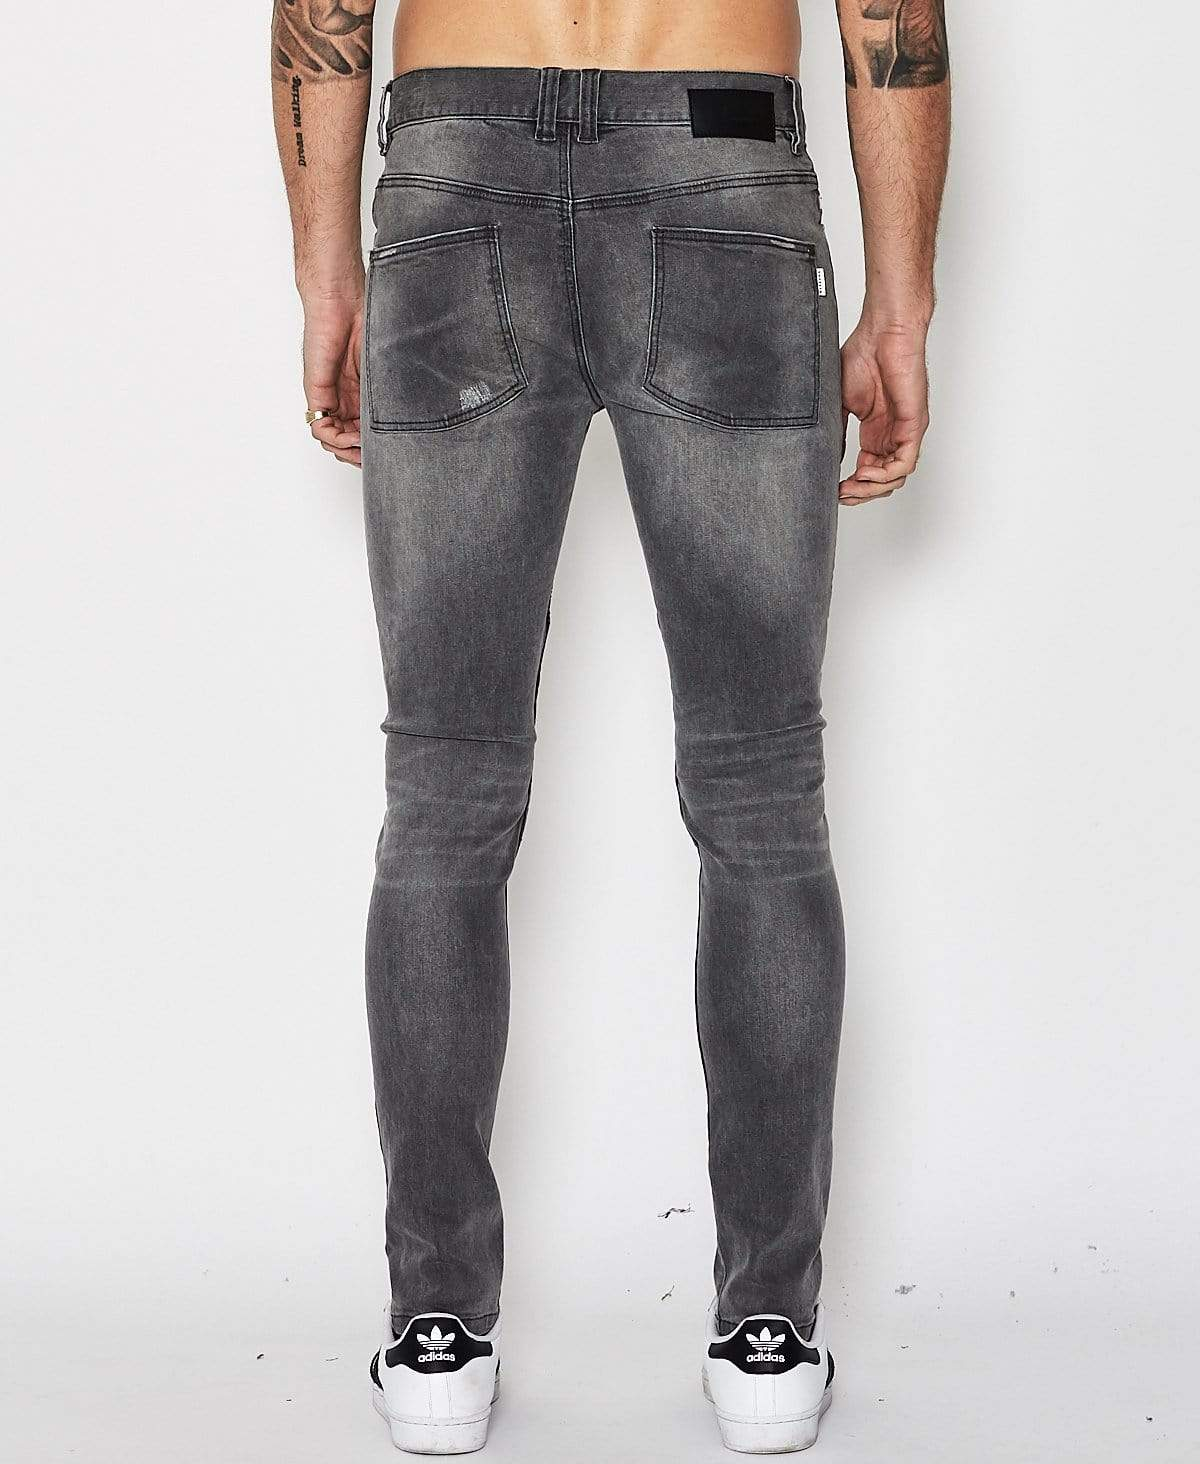 Nena & Pasadena Combination Biker Jeans Grey Trash